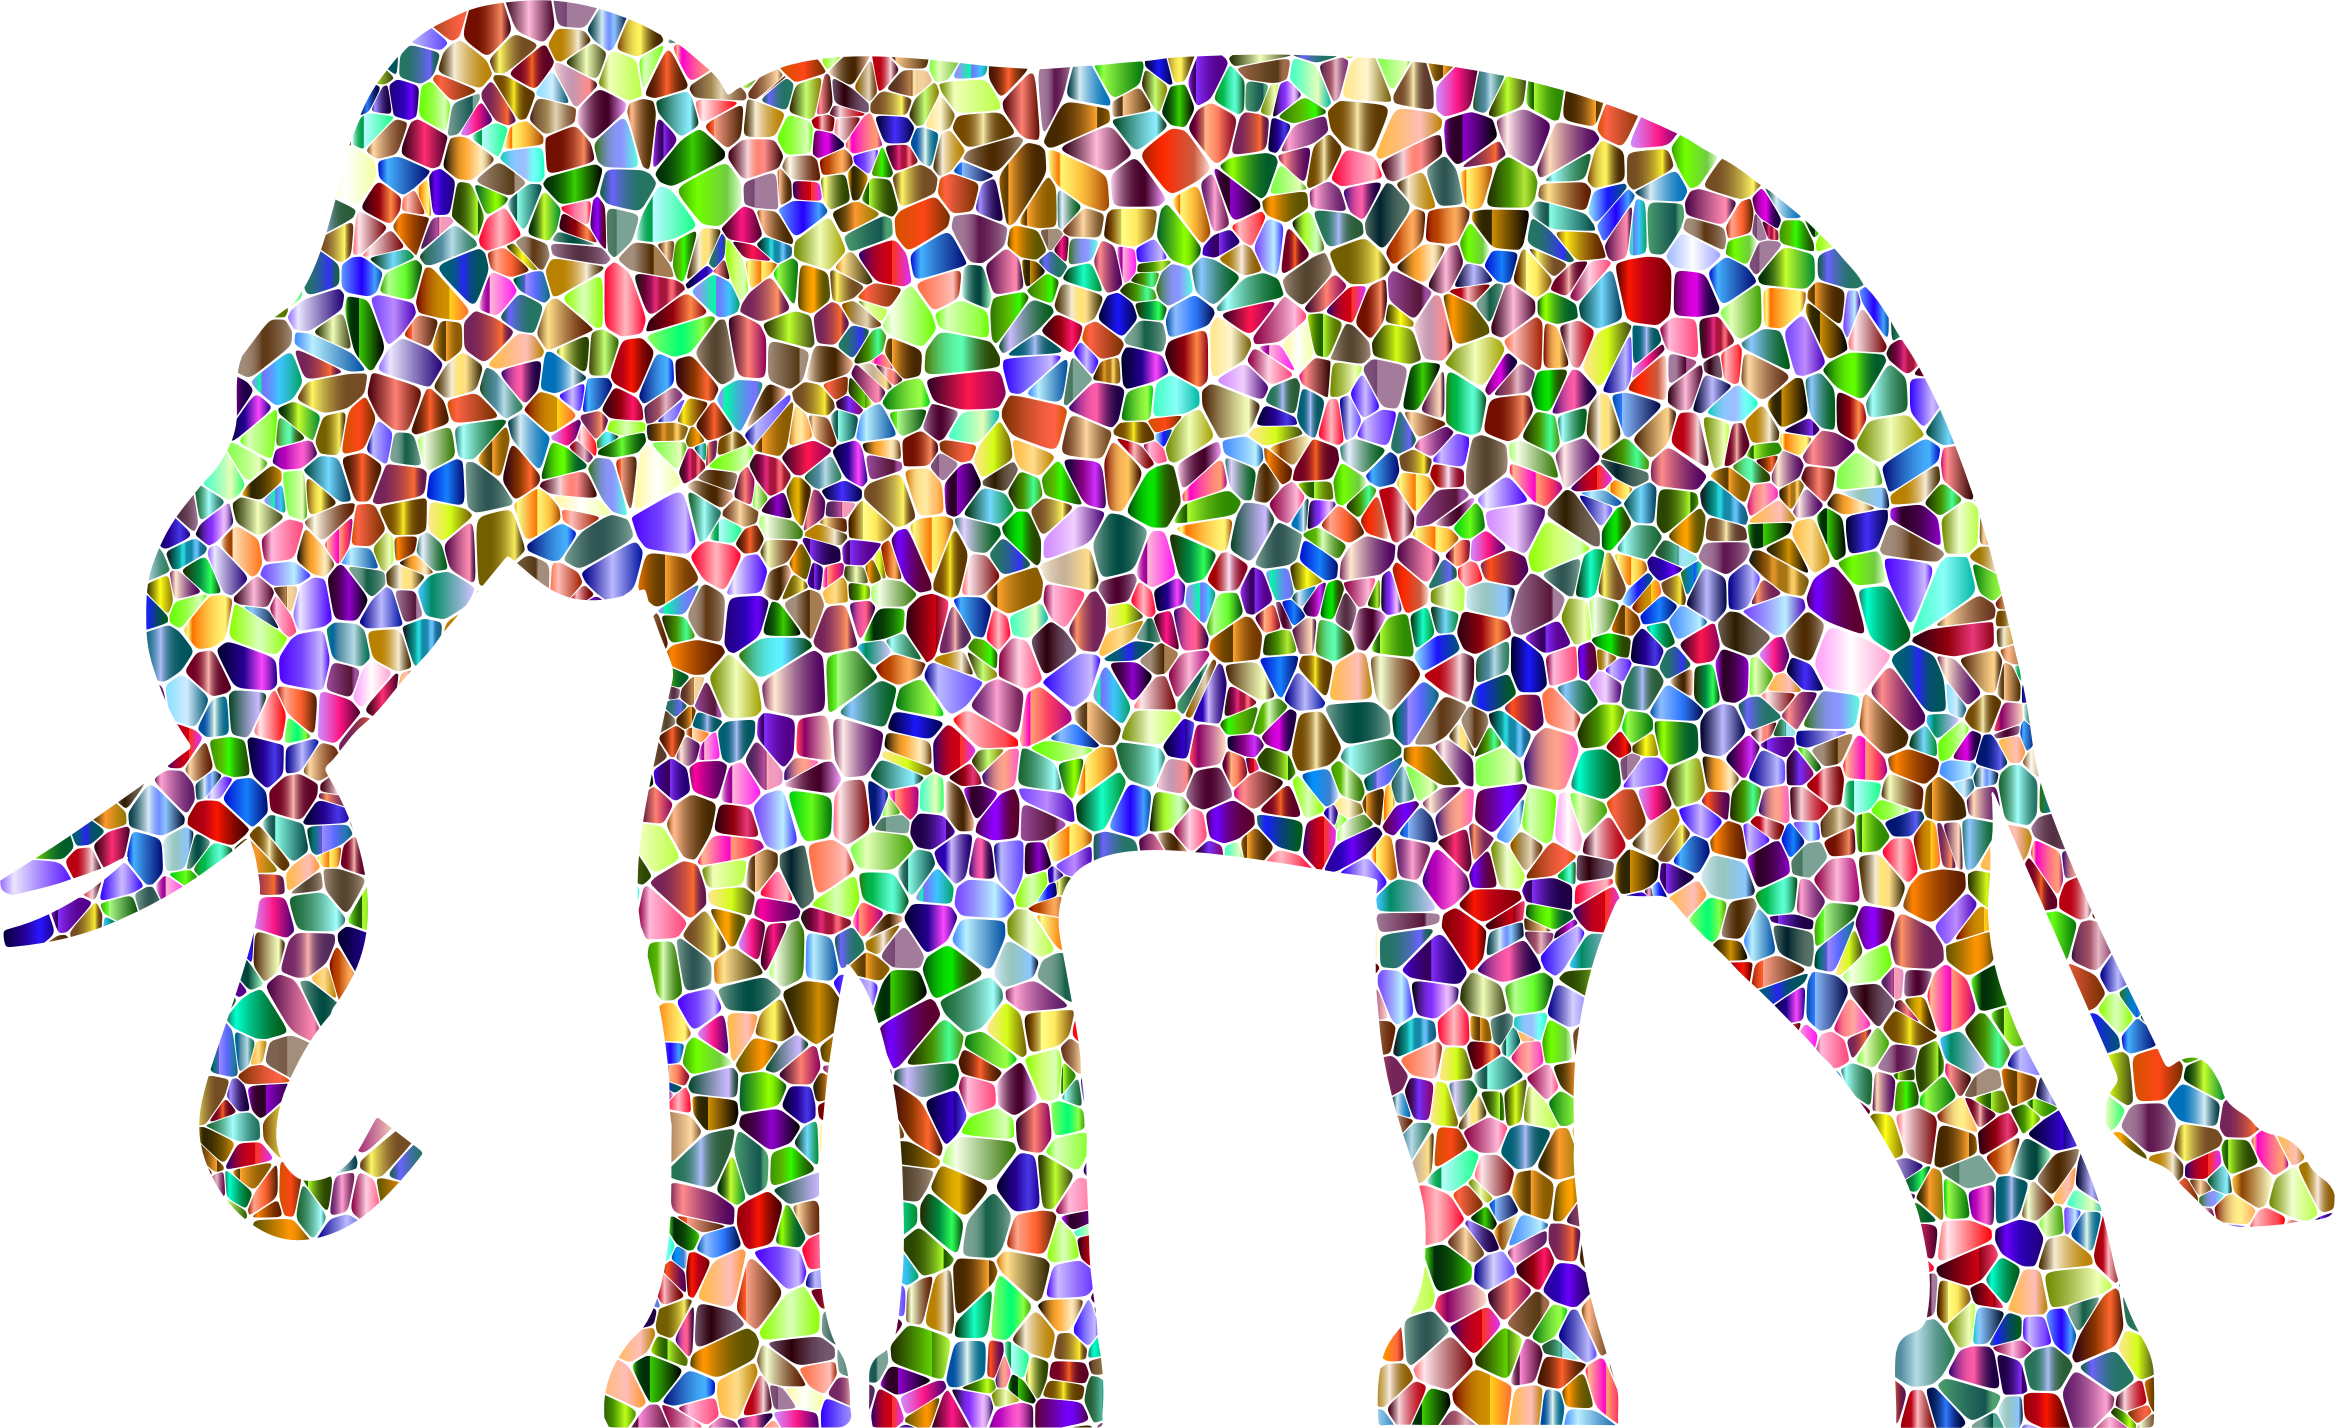 Vivid Chromatic Elephant Silhouette No Background by GDJ